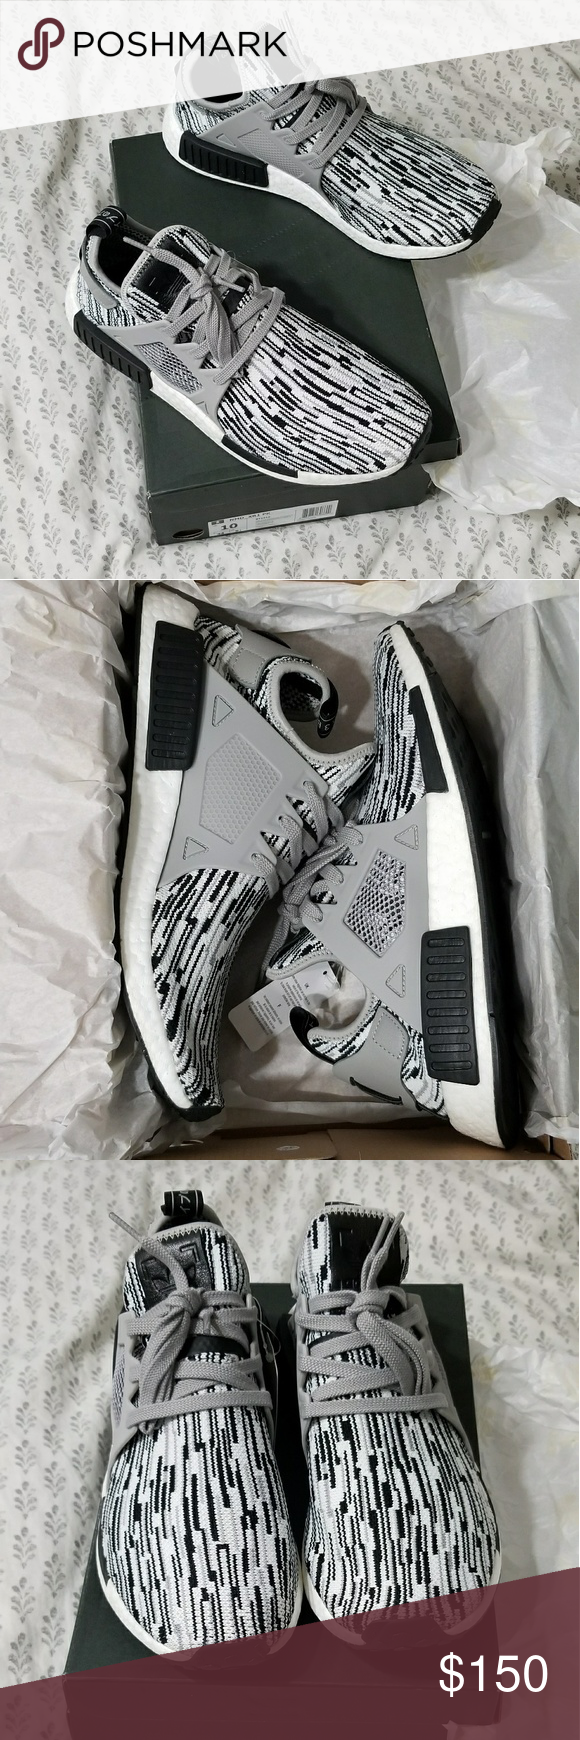 716c0fa396e4a Adidas NMD XR1 PK glitch camo oreo New in original box Adidas nmd xr1  primeknit glitch camo oreo men s size 10 never worn. Can fit women s 11.5.